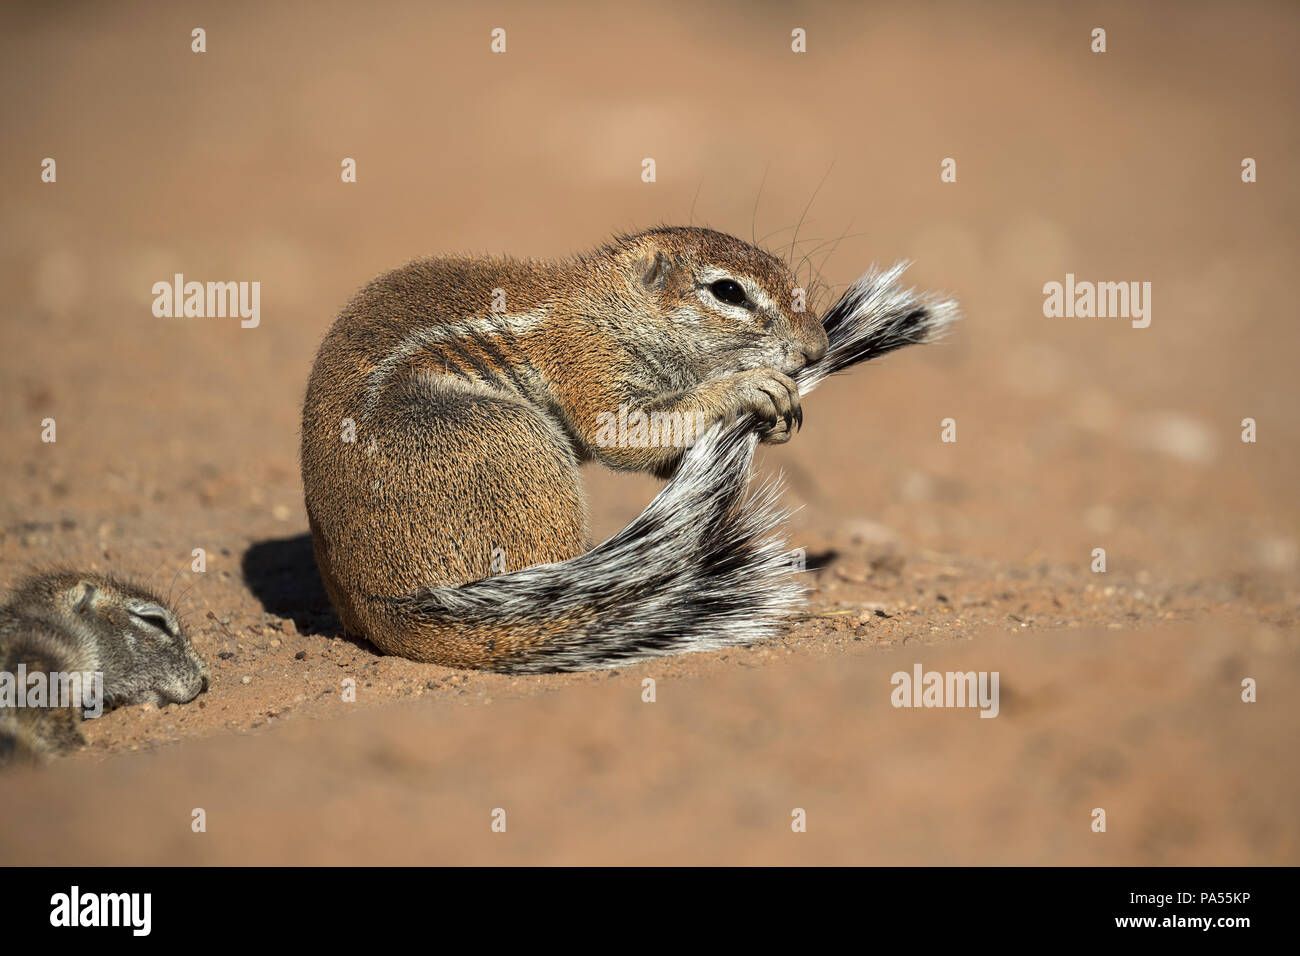 Ground squirrel (Xerus inauris) grooming, Kgalagadi Transfrontier Park, Northern Cape, South Africa - Stock Image